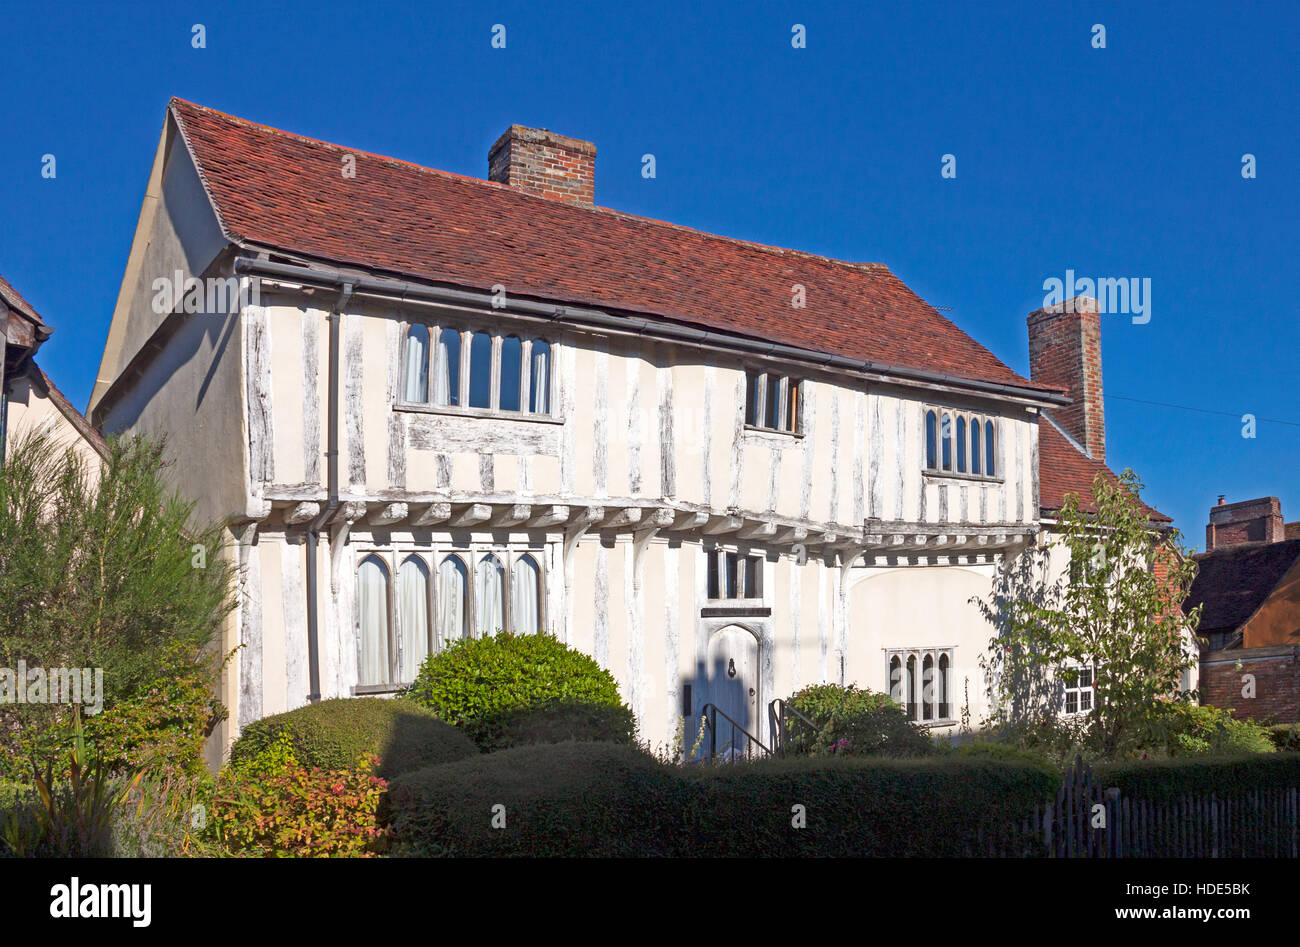 Timber framed house in Lady Street, Lavenham, Suffolk, England. A picturesque historic village. - Stock Image